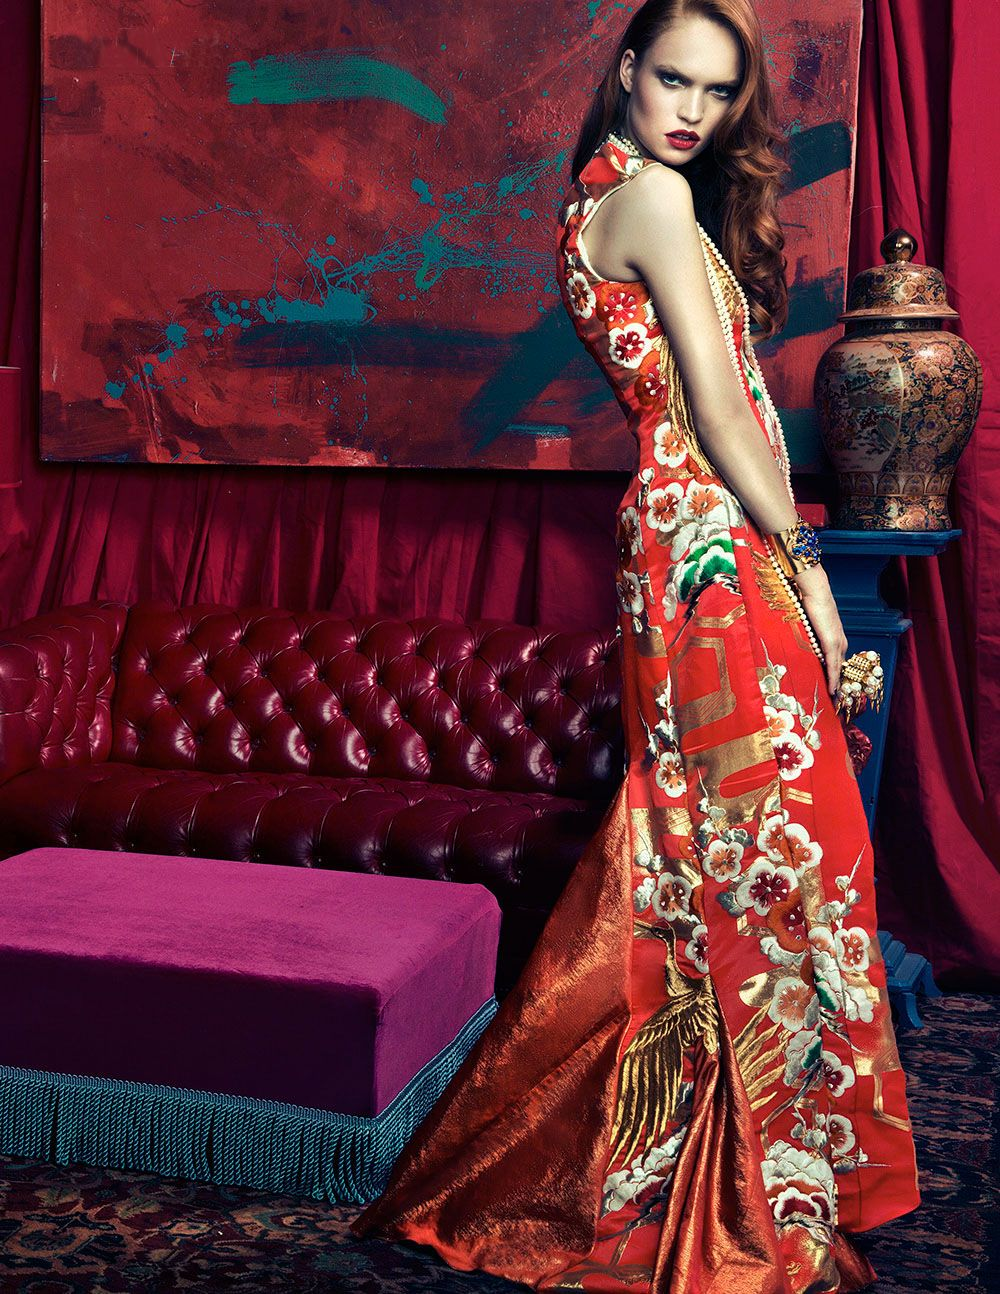 Luisa Bianchin by An Le for Harper's Bazaar Vietnam December 2012. #fashion #photography